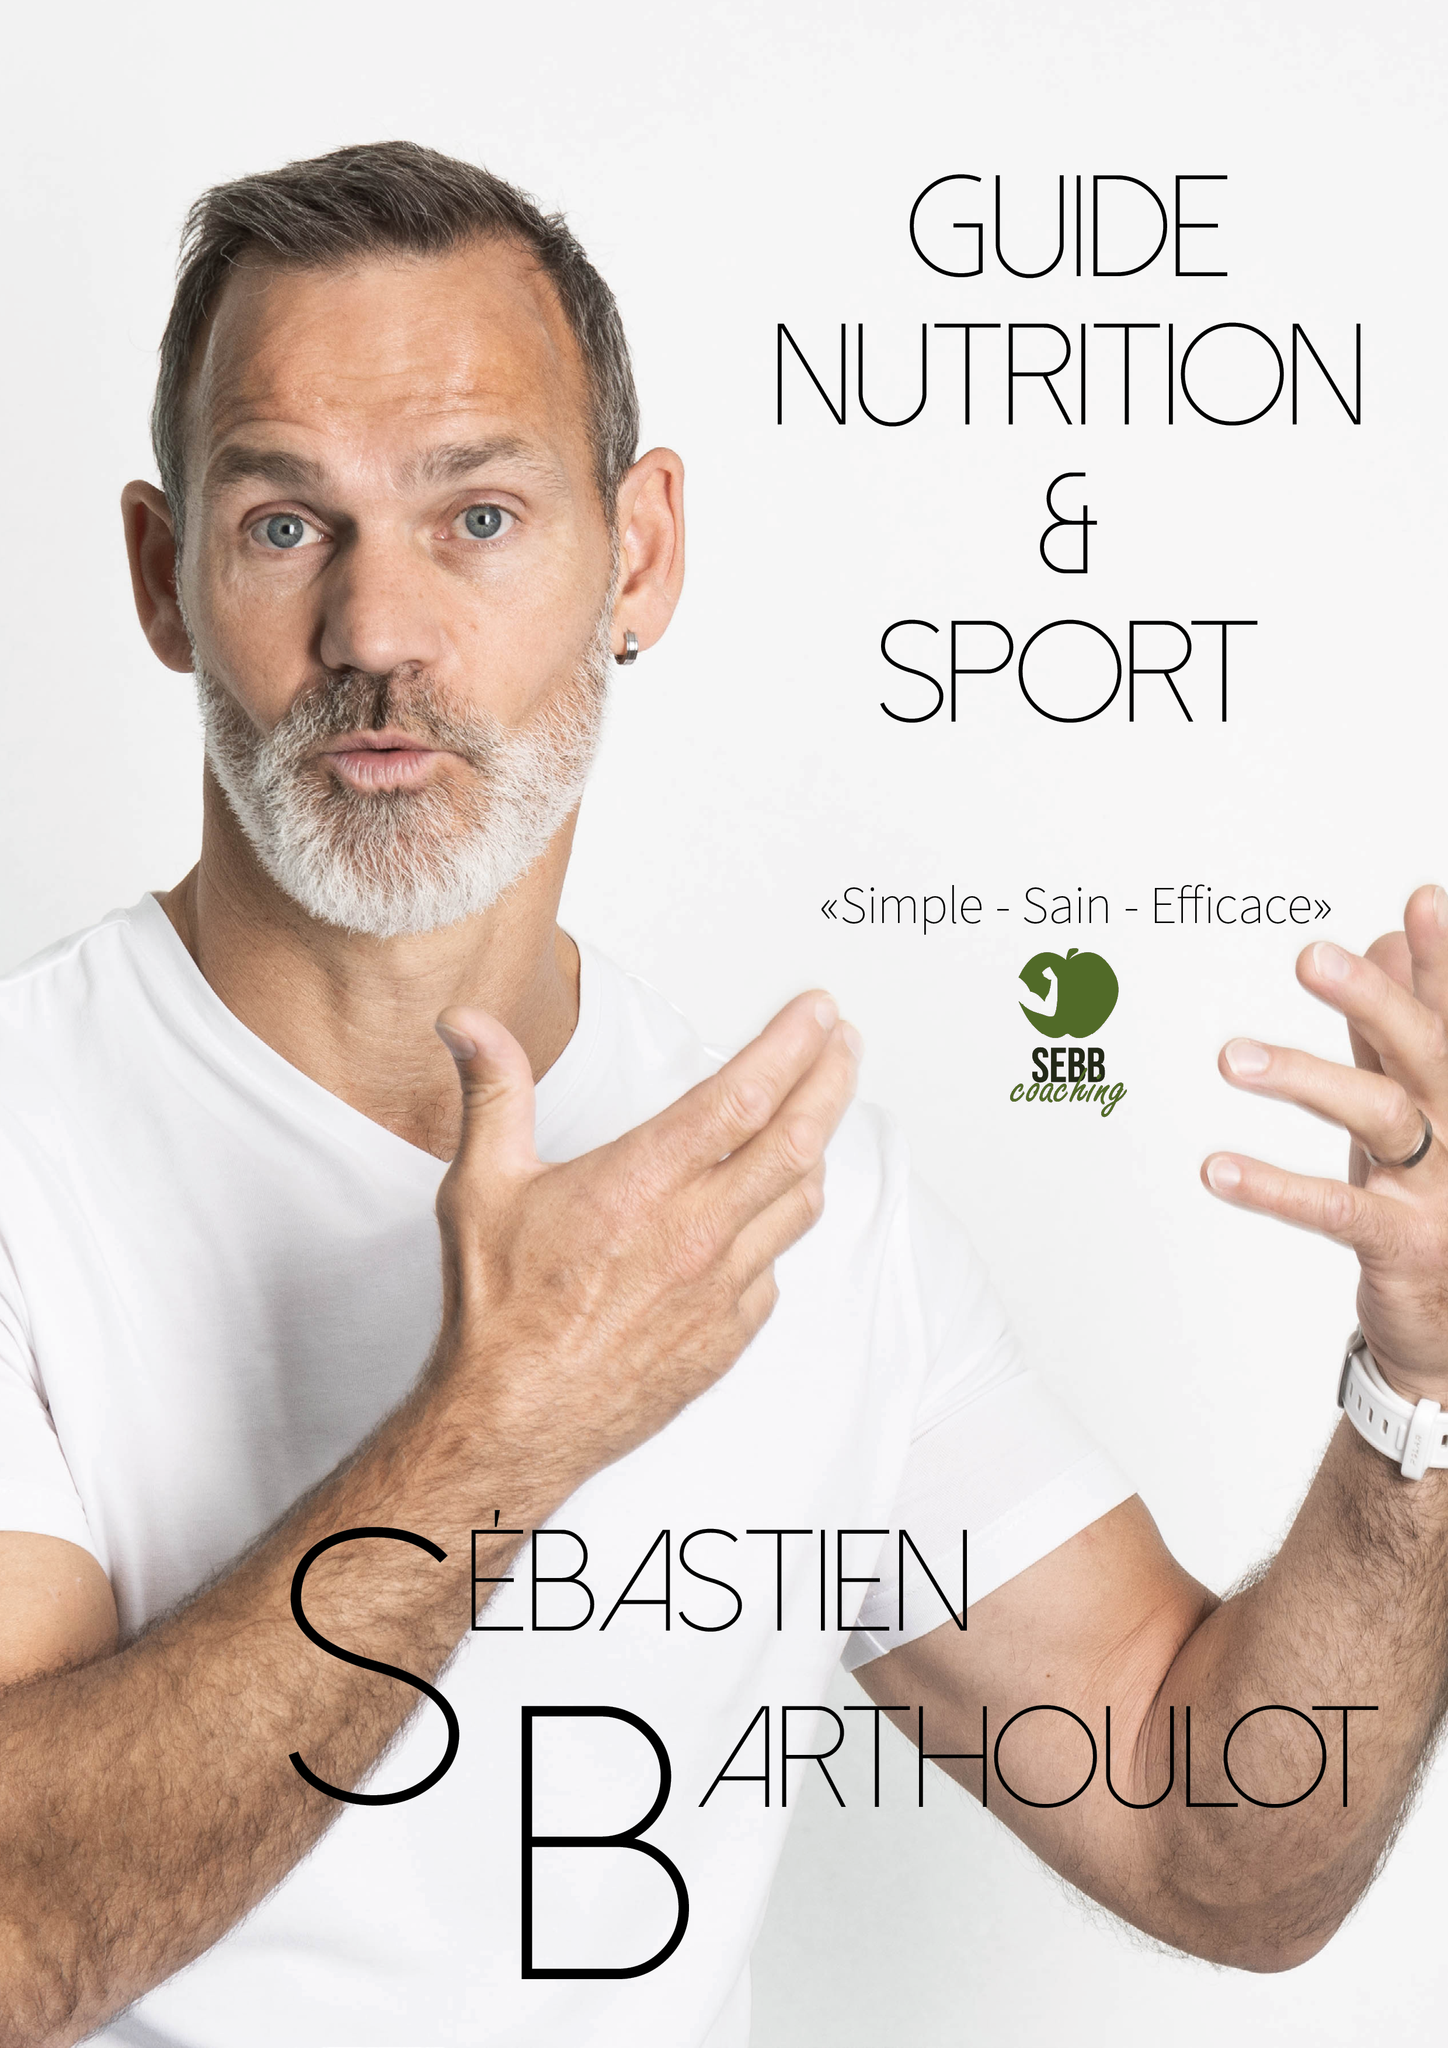 Guide Nutrition & Sport